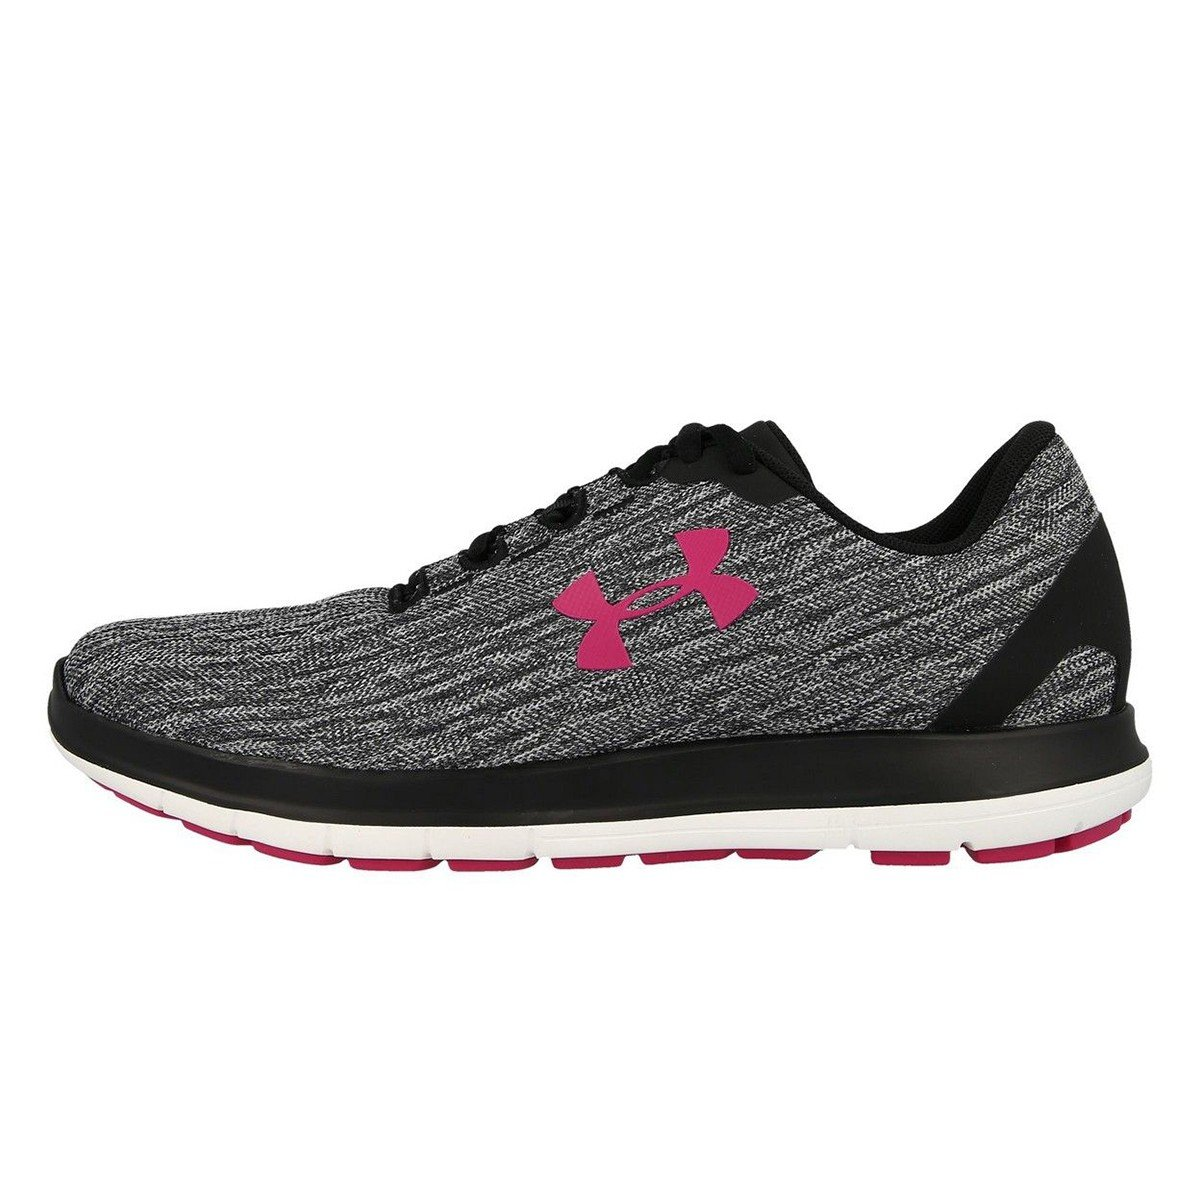 Under Armour Women's UA Remix Trainers Various Colours 191480029435 - 6 UK Grey Pink